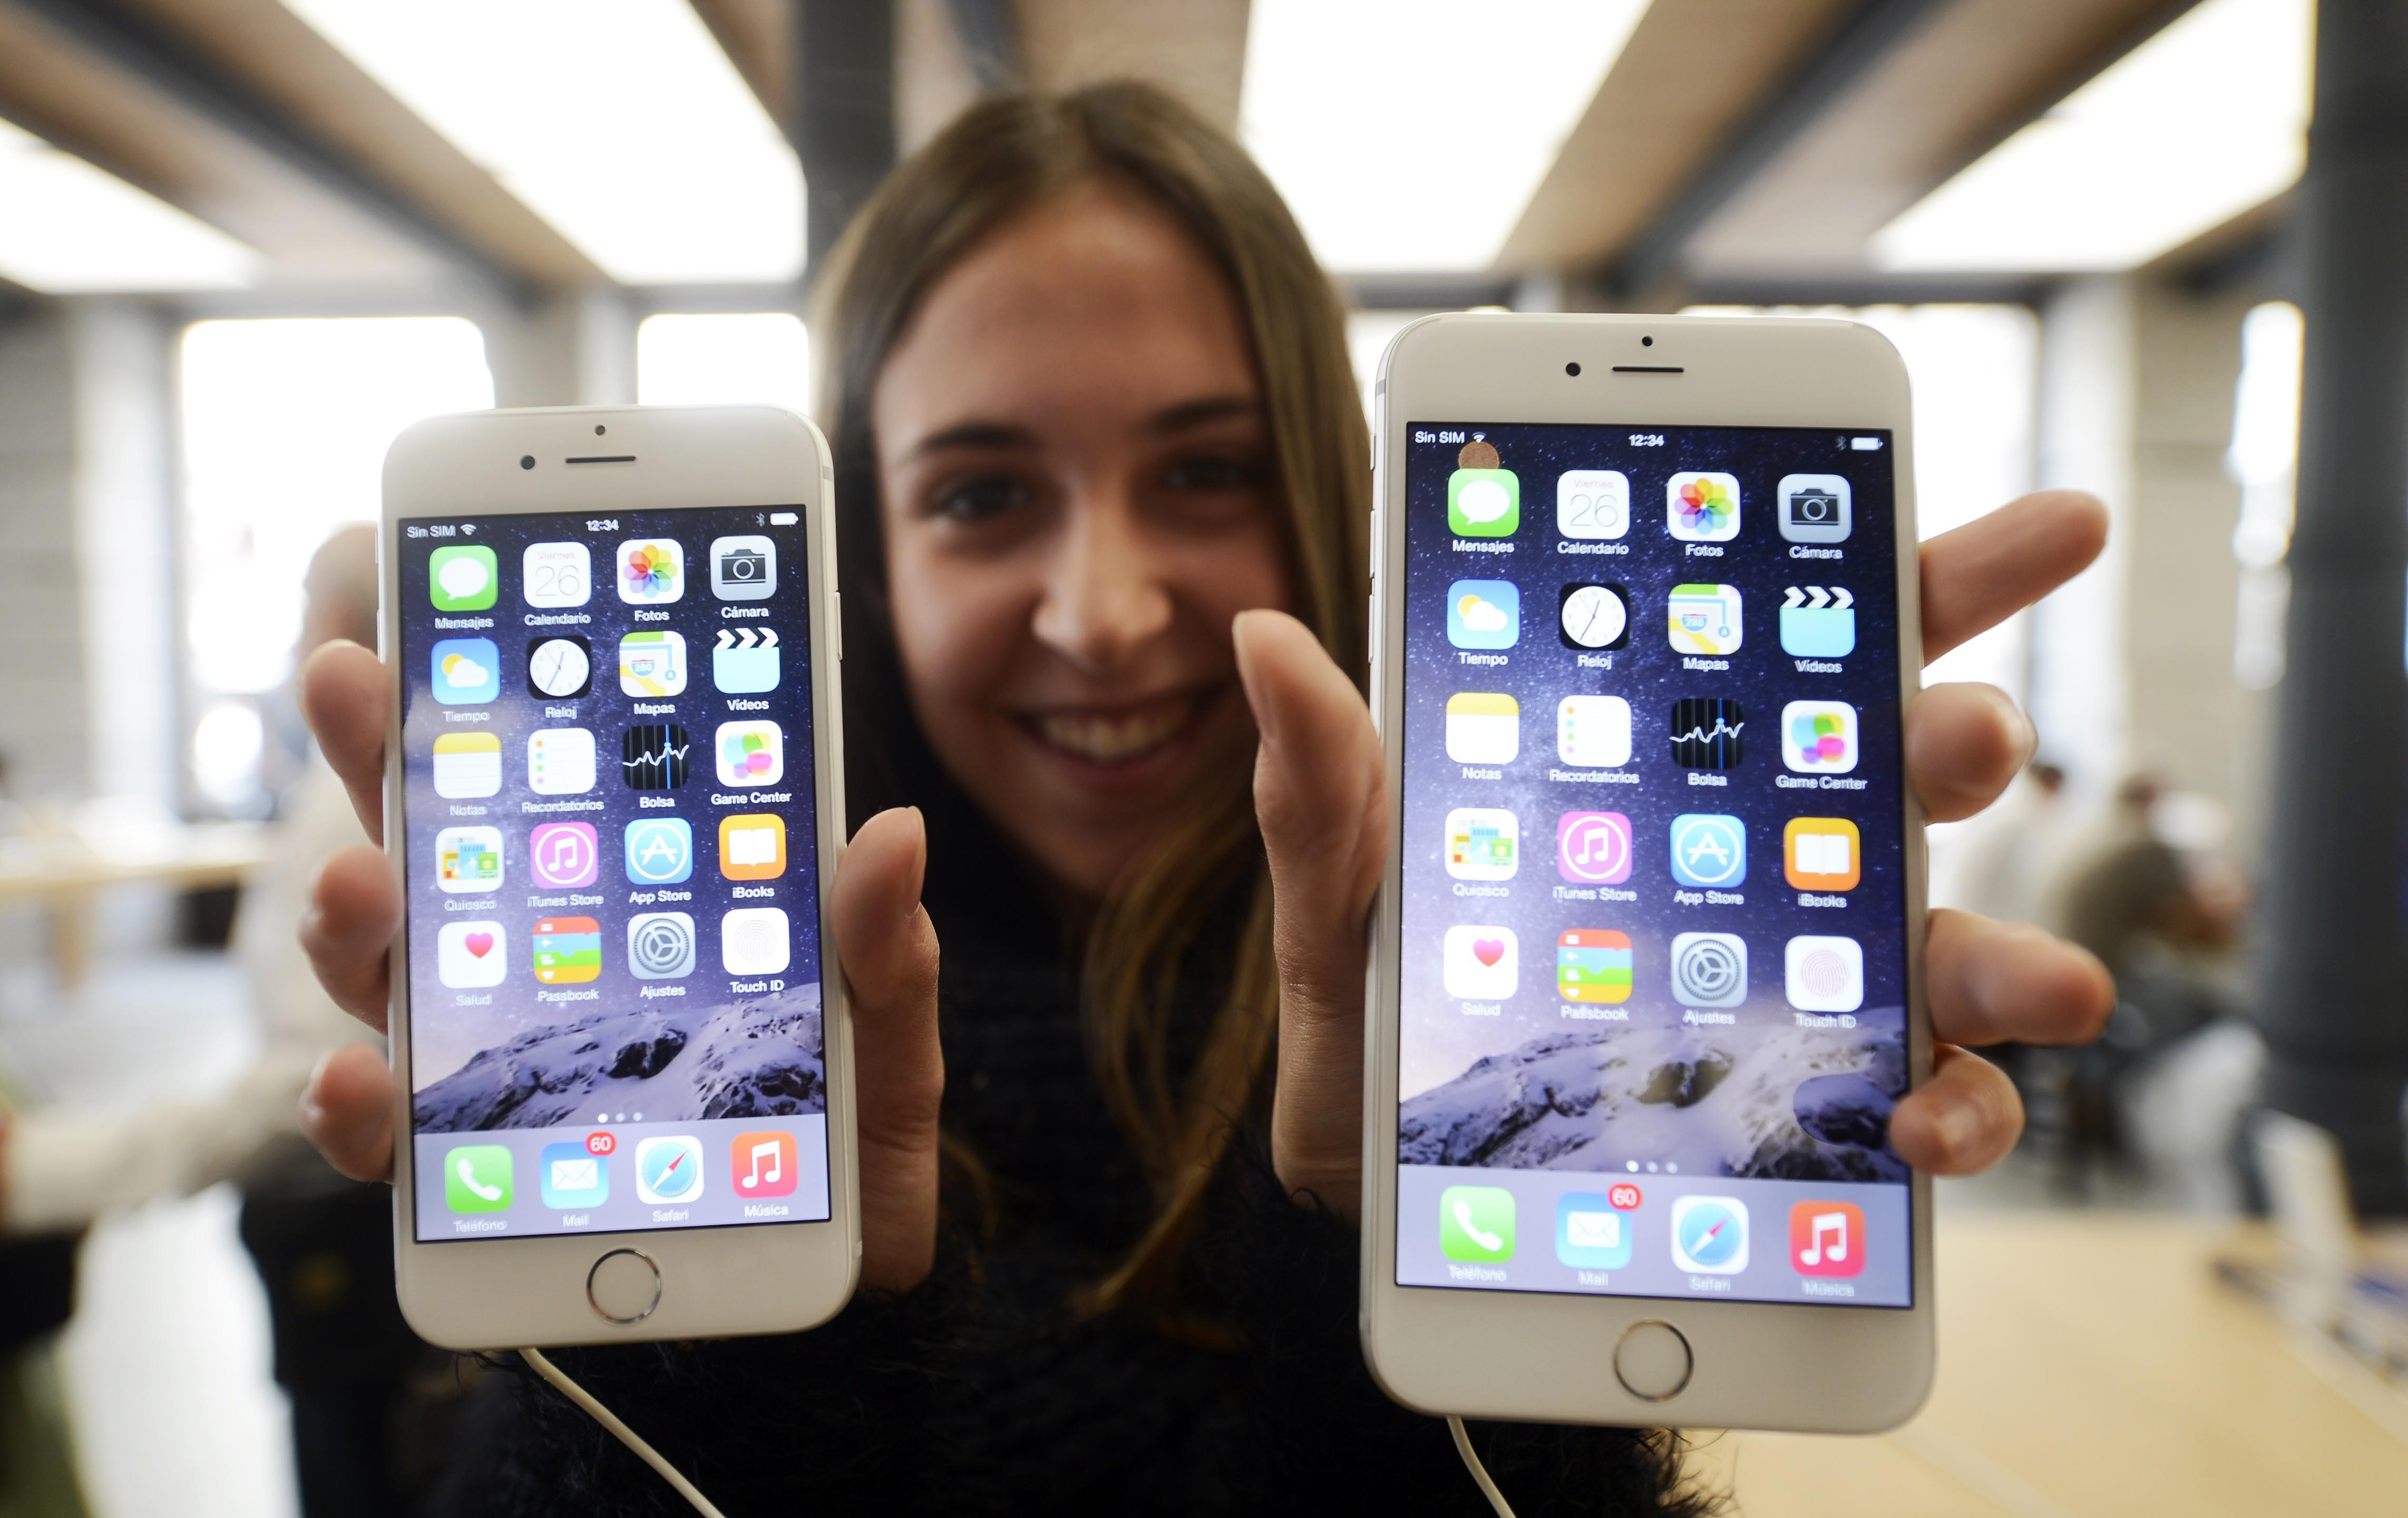 Apple's iPhone 6 and iPhone 6 Plus.